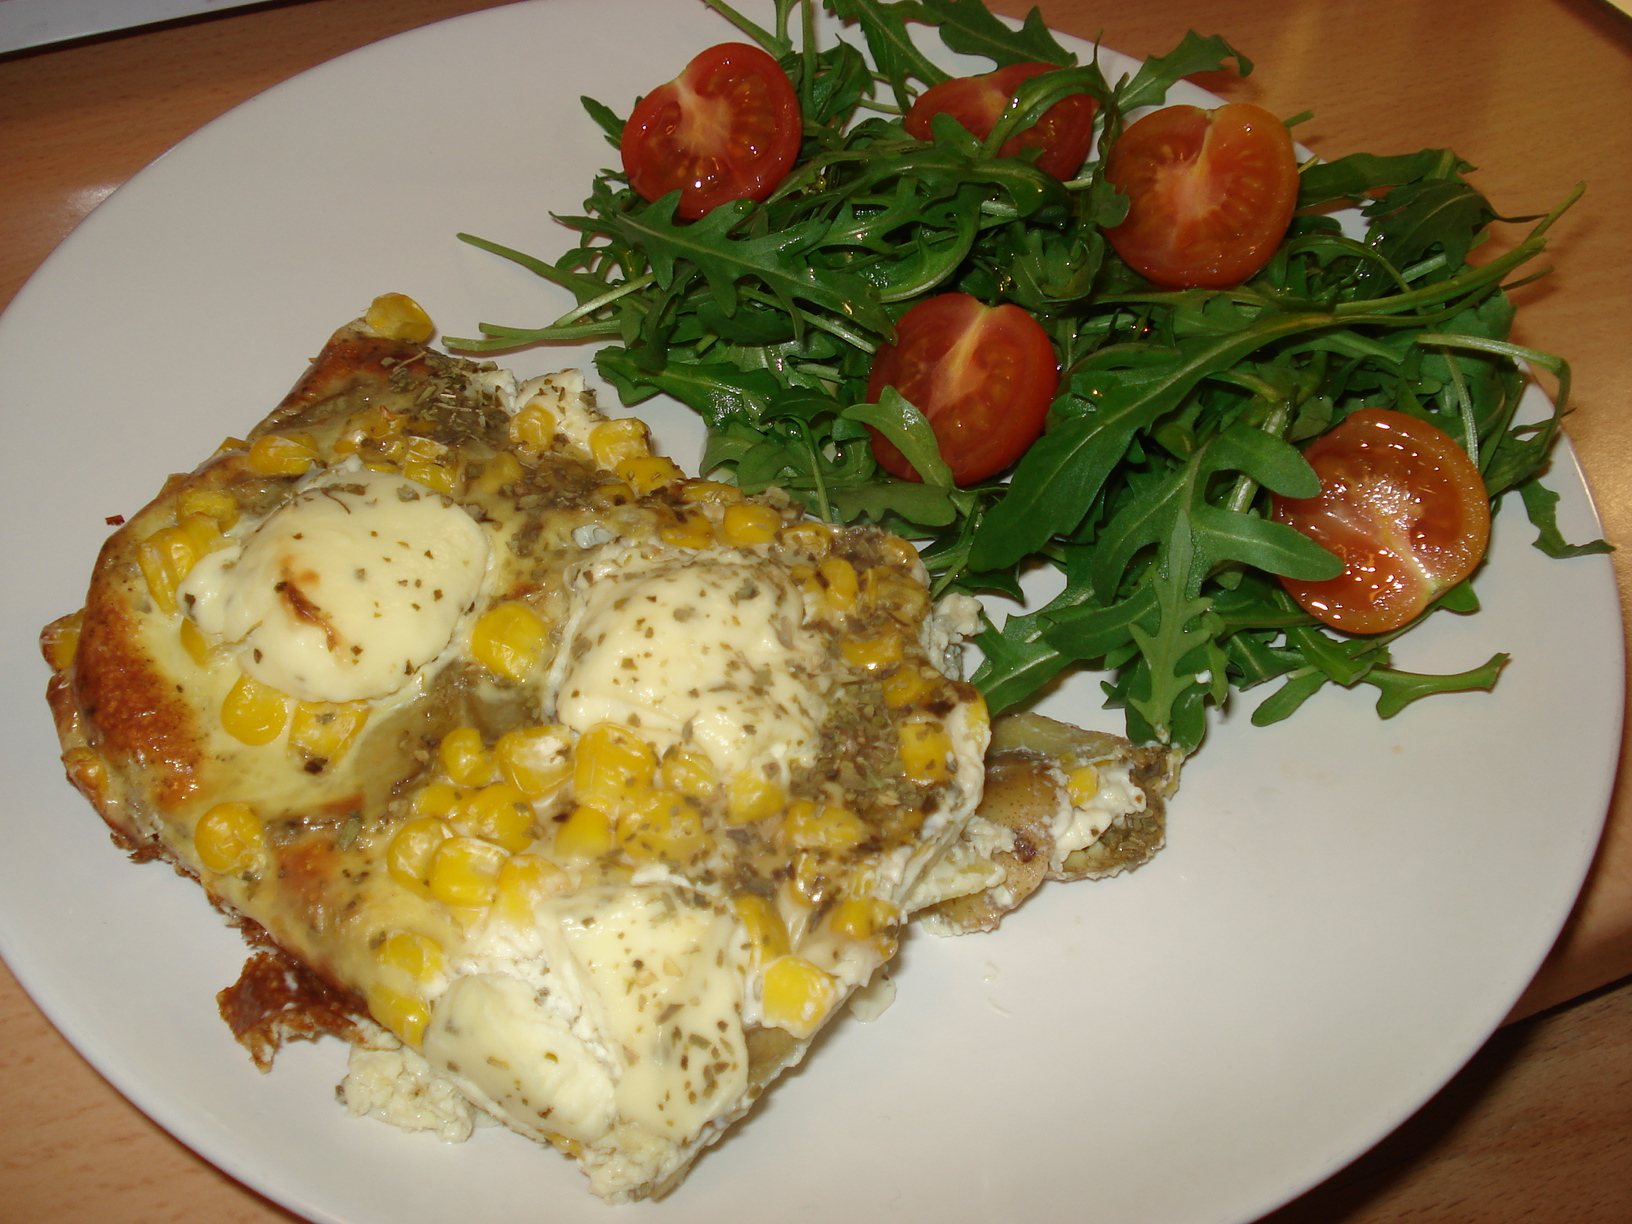 Frittata with corn and cheese